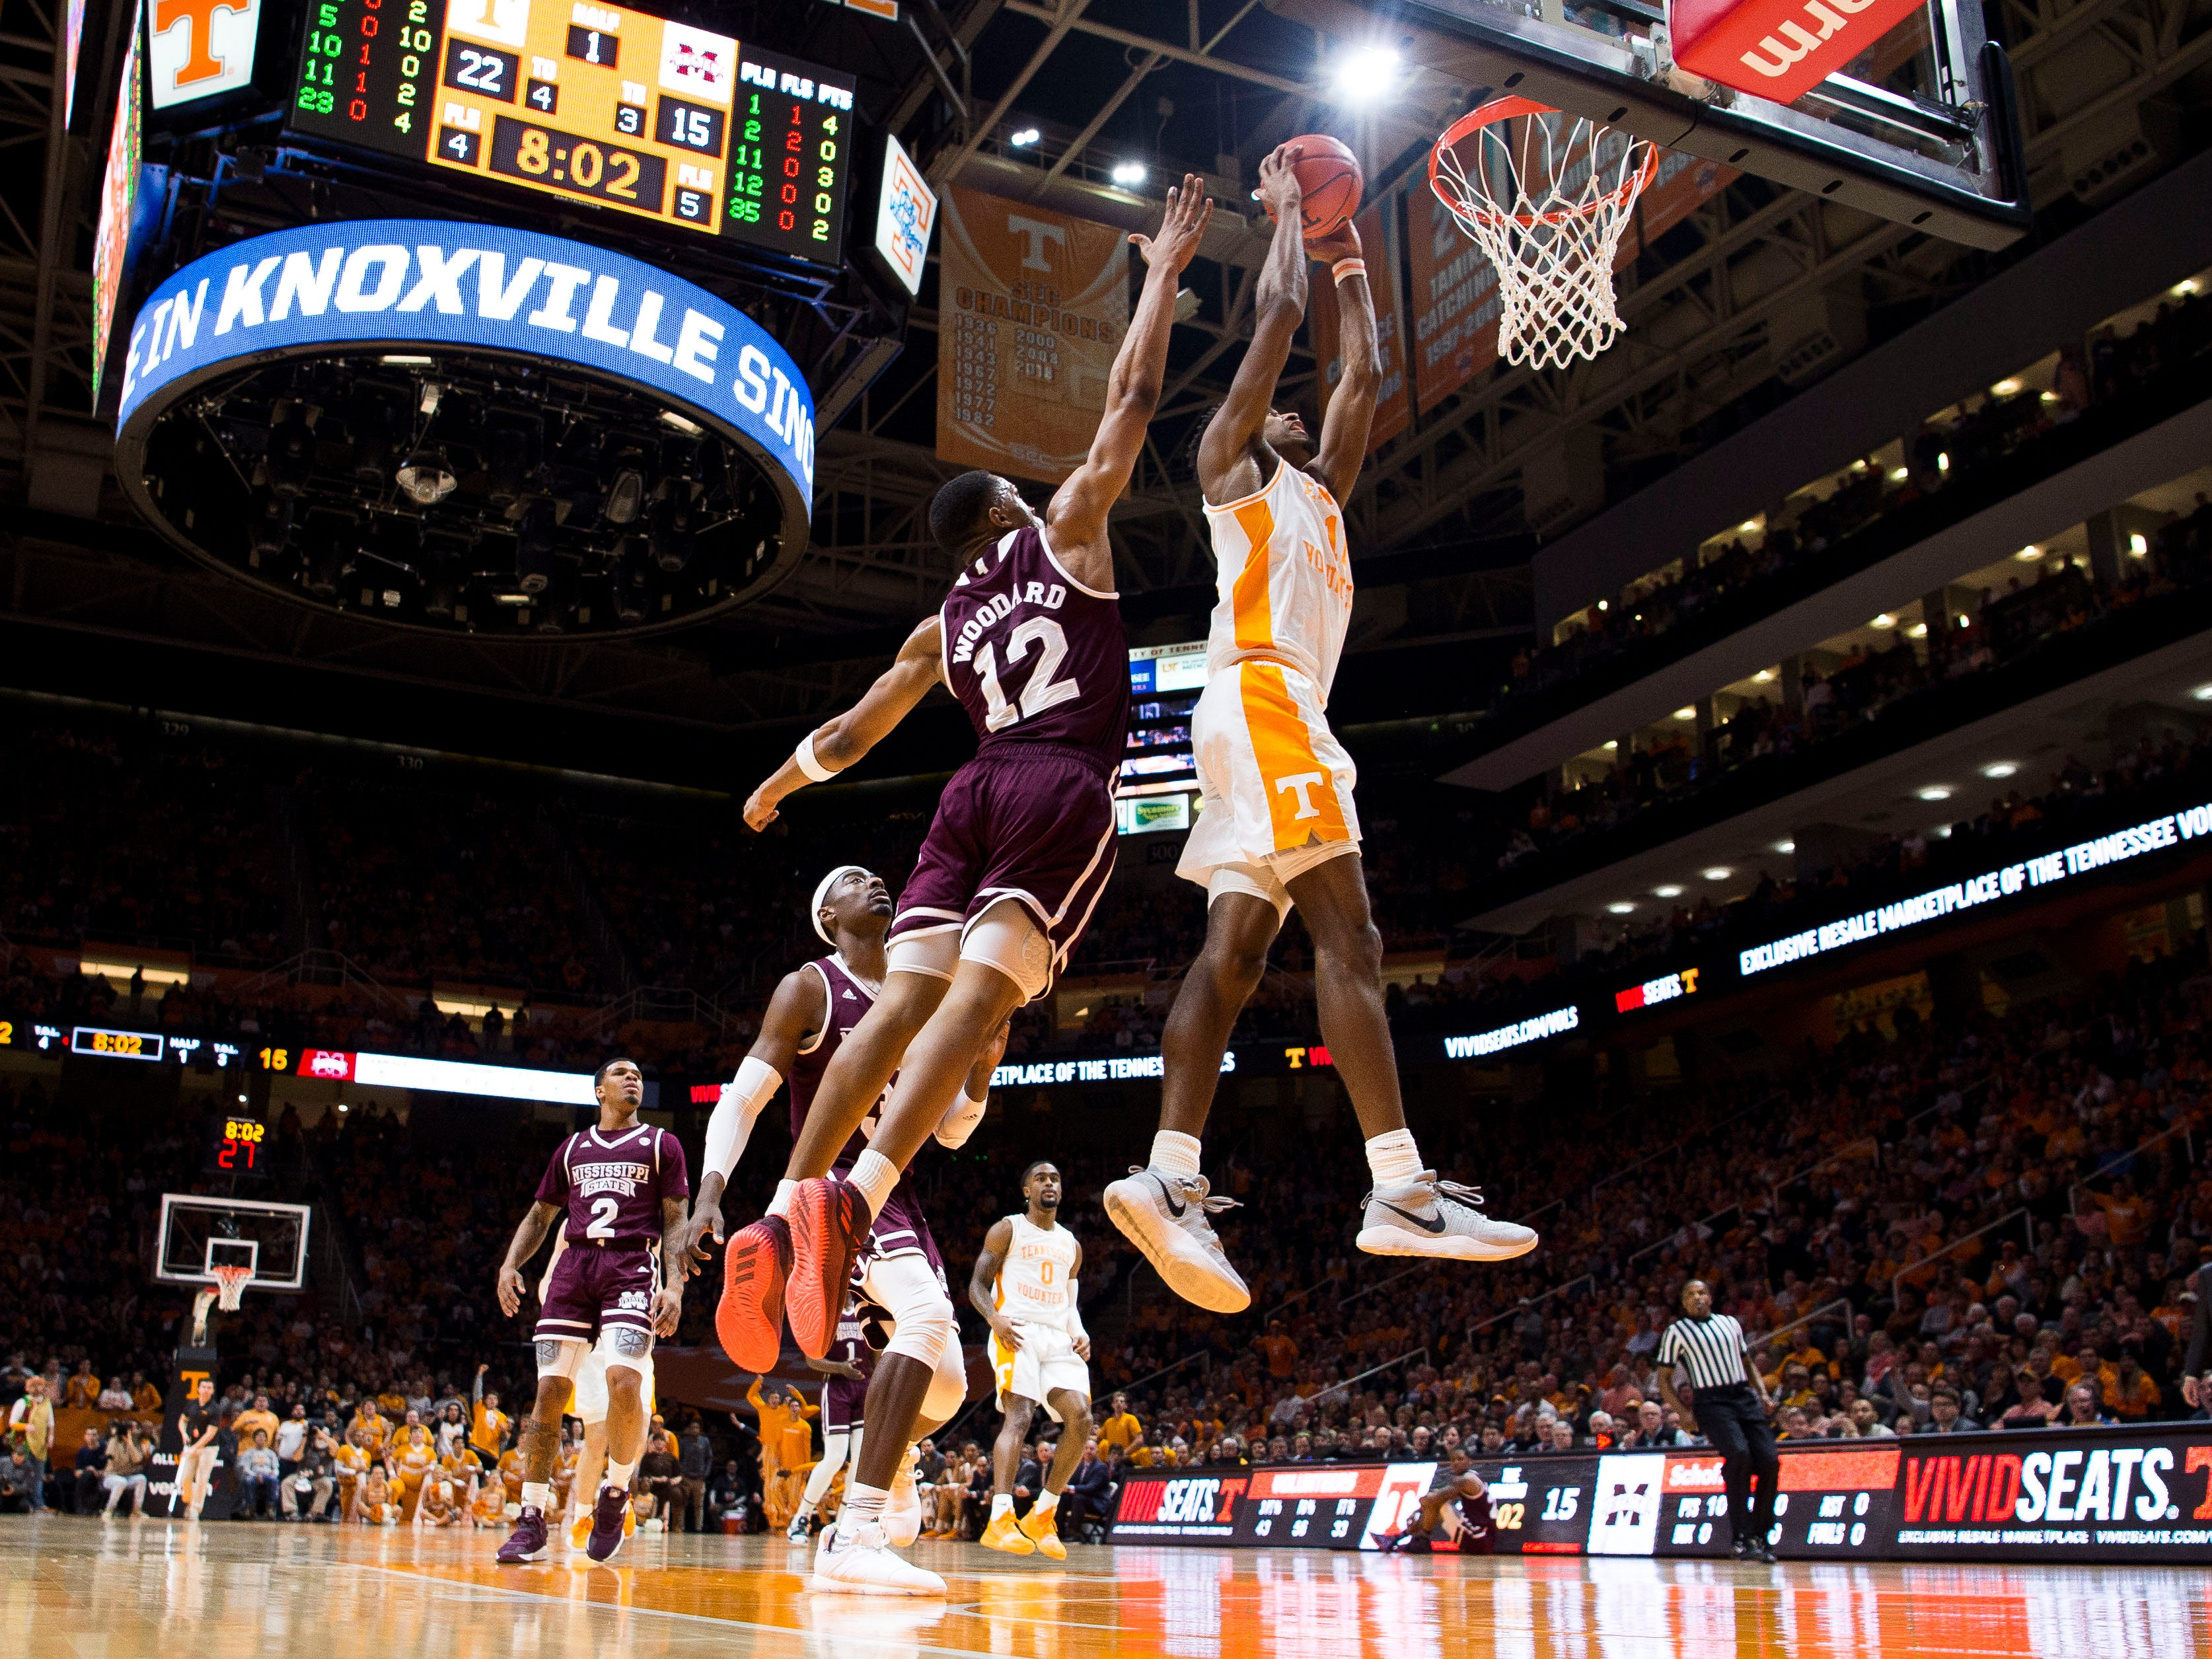 Tennessee forward Kyle Alexander (11) makes a dunk during Tennessee's home finale against Mississippi State at Thompson-Boling Arena in Knoxville on Tuesday, March 5, 2019.